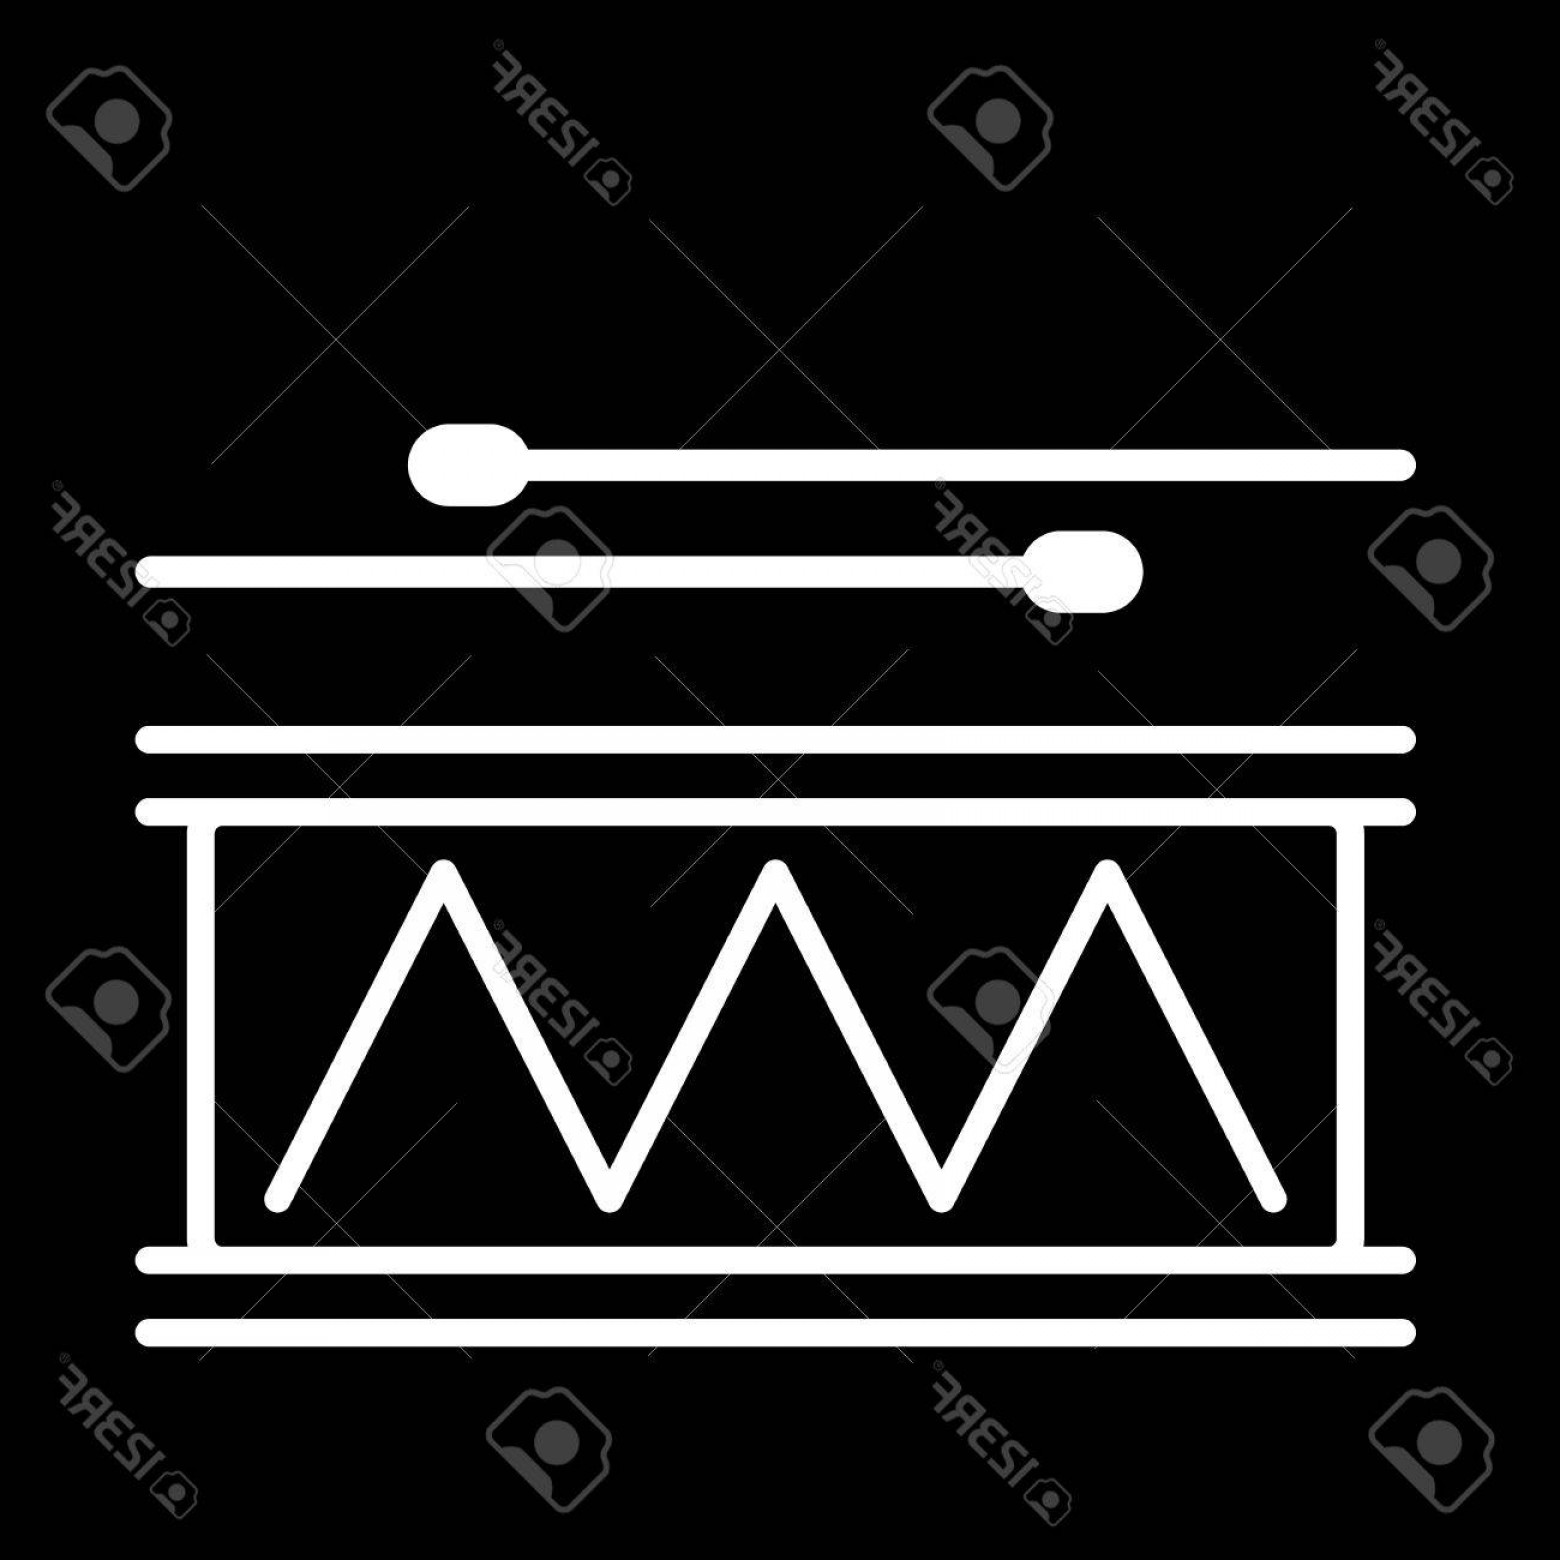 Drumline Vector Art: Photostock Vector Drum Line Art Vector Icon Isolated On A Black Background